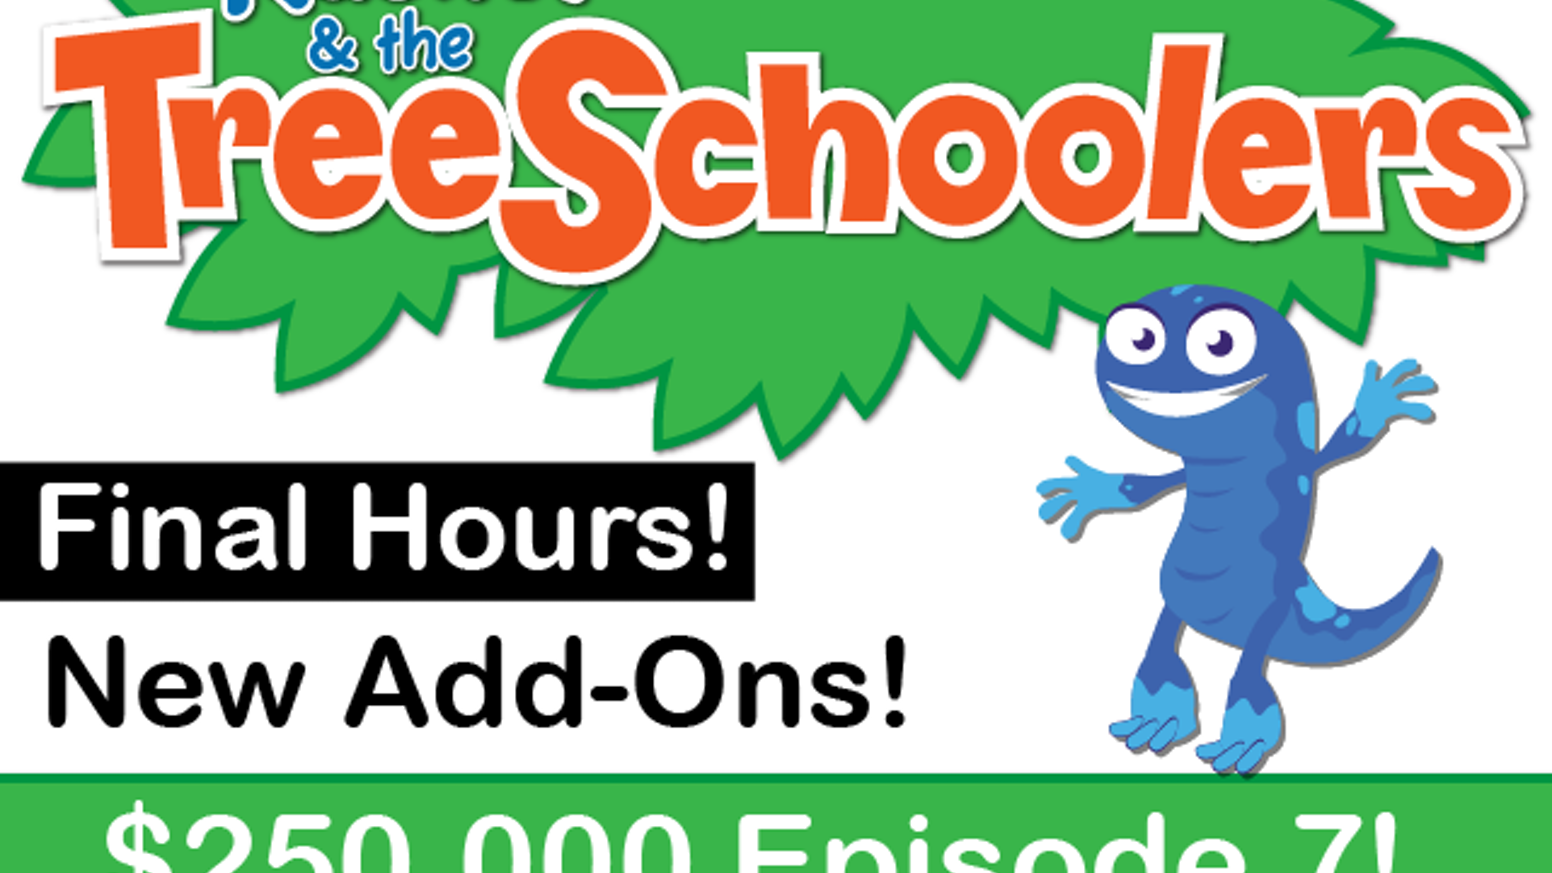 Finally, a show that's as smart and fun as your kids! A PhD backed preschool show in 12 musical episodes. Brought to You by You.